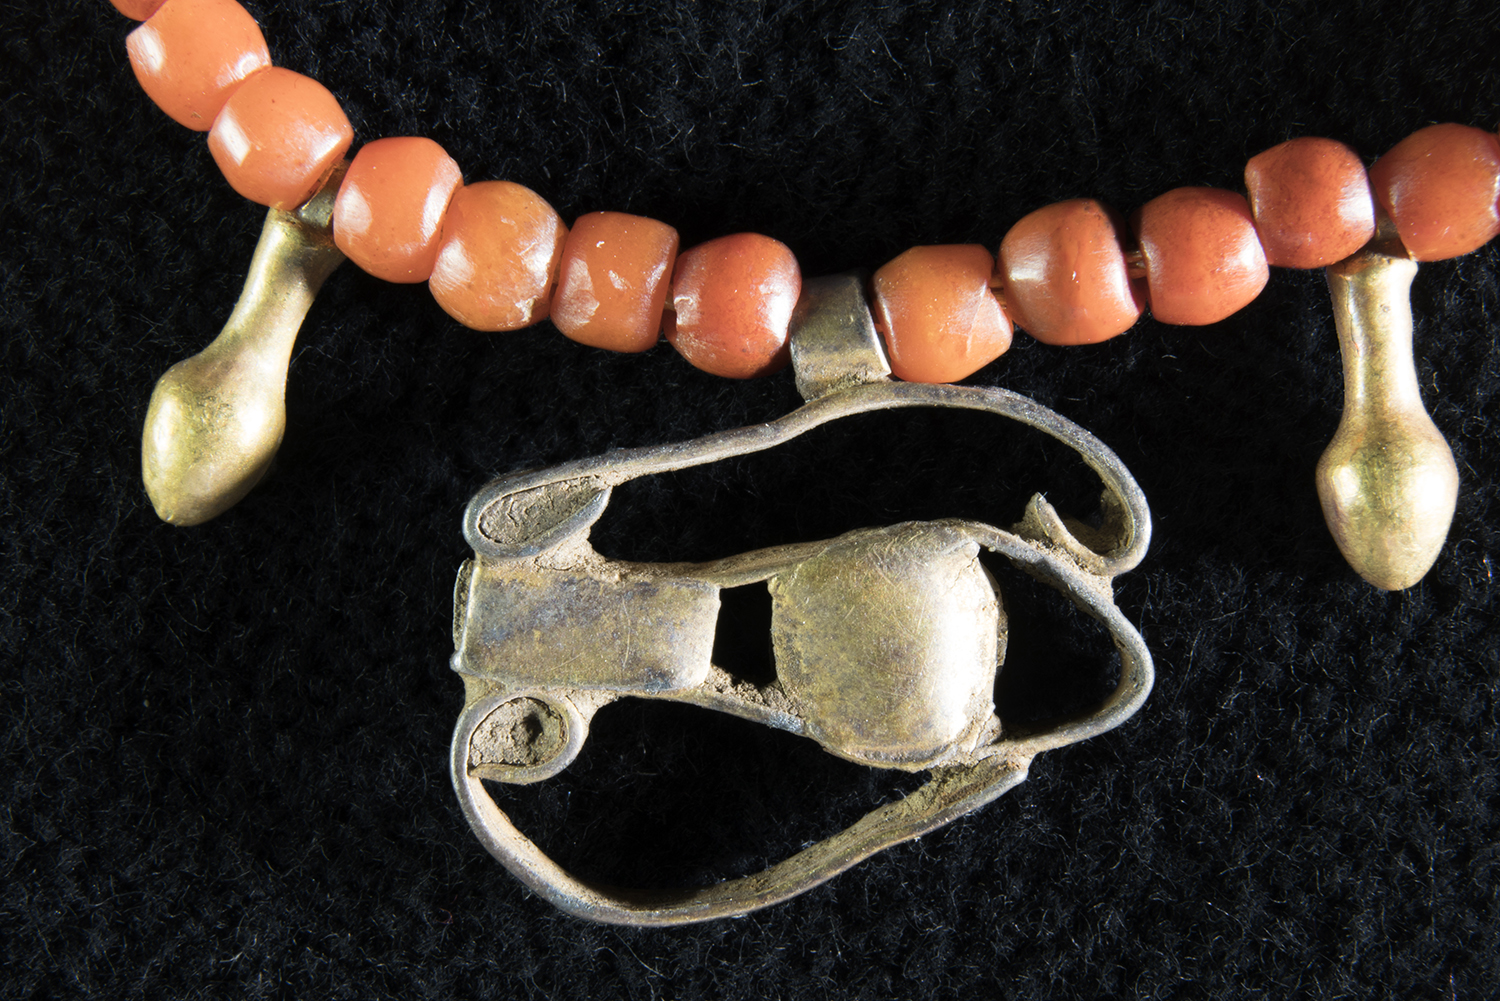 Figure 34:   Wedjat  Eye . There are quite a few examples of  wedjat  eye amulets and rings in the Glencairn collection, made of a variety of materials, several turquoise-colored faience amulets (see Figure 33), and this example, made of strips of gold. Glencairn Museum 15.JW.191.